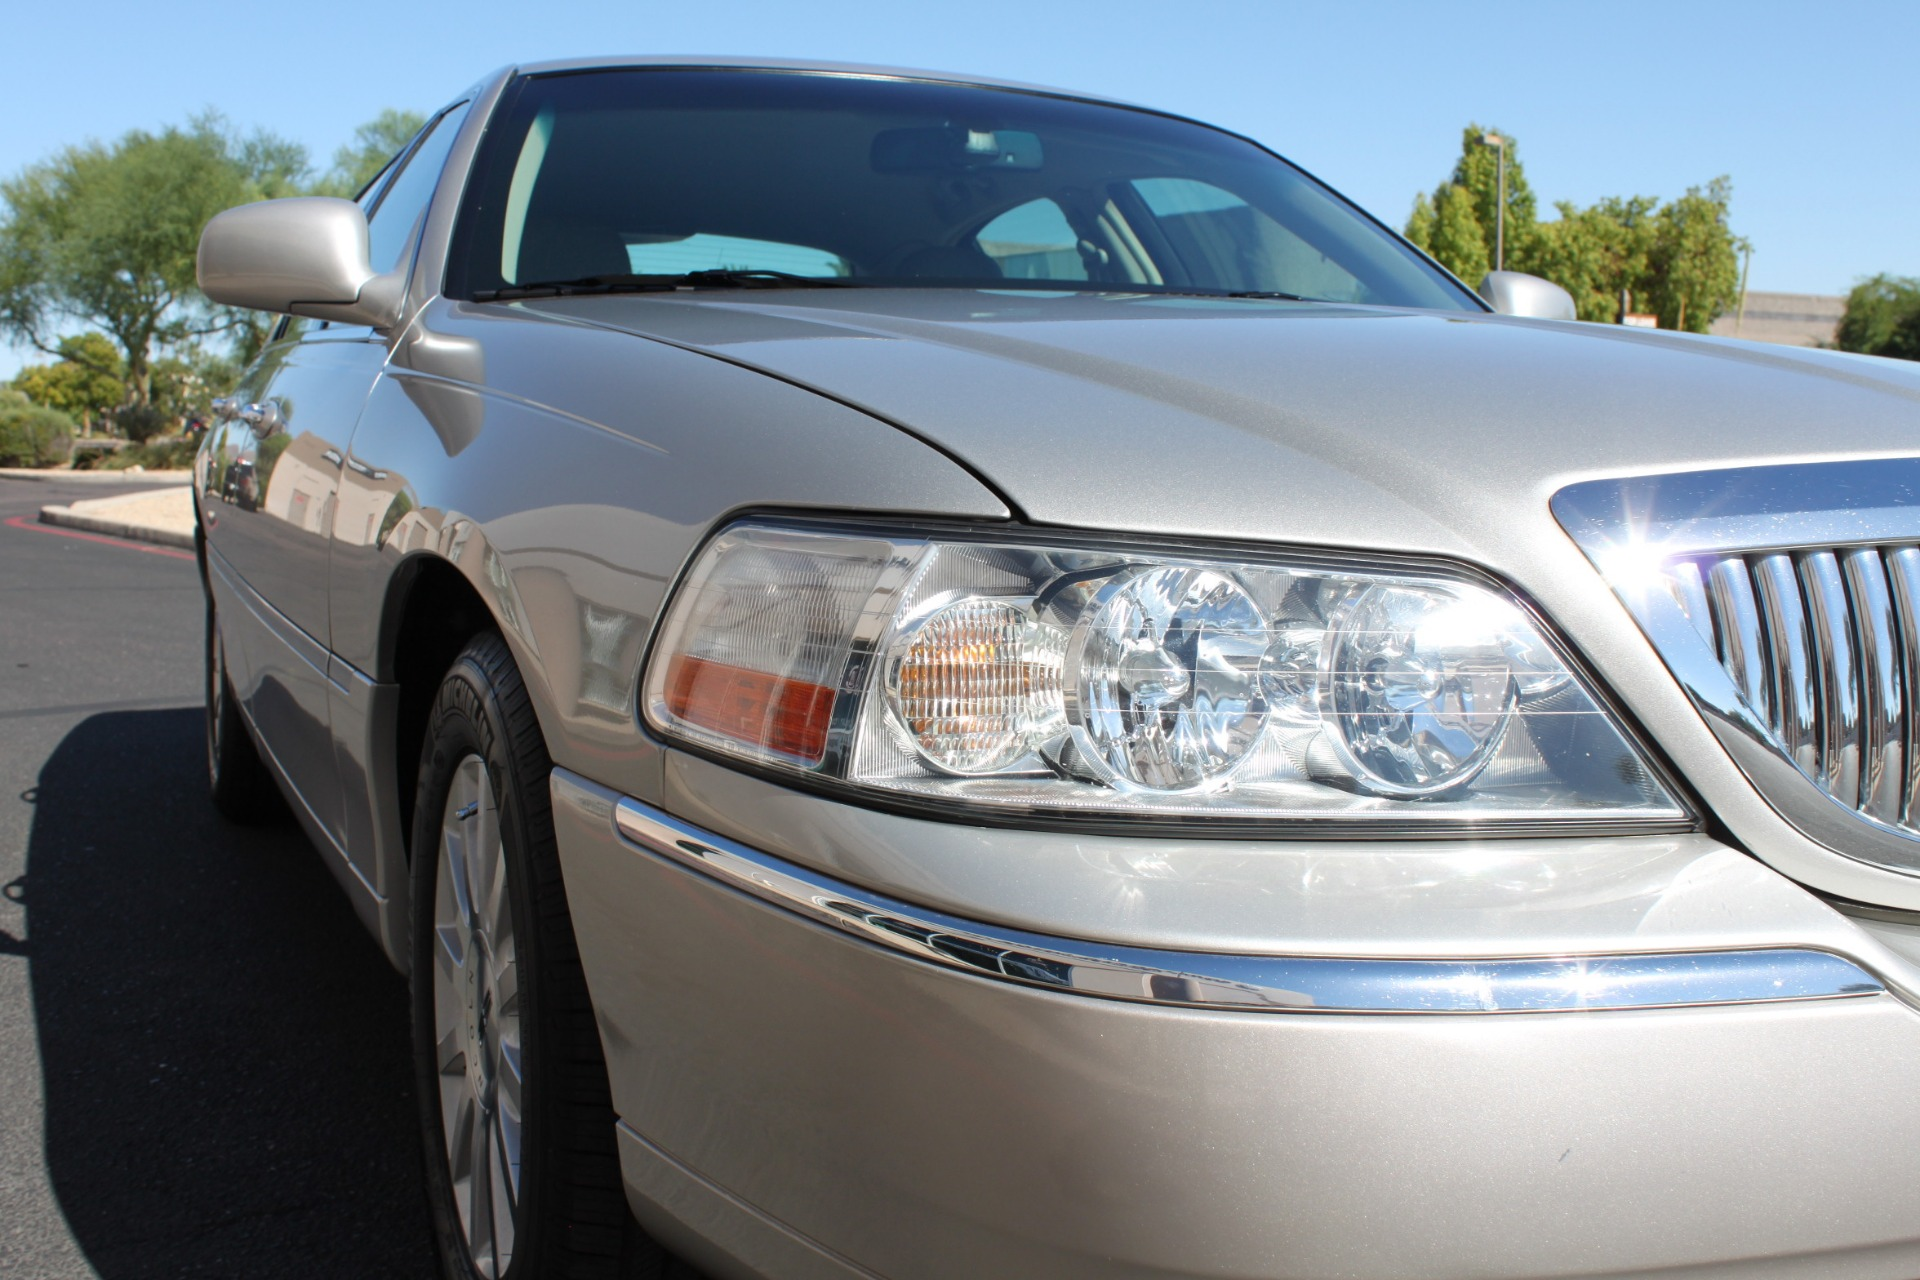 Used-2006-Lincoln-Town-Car-Signature-Acura